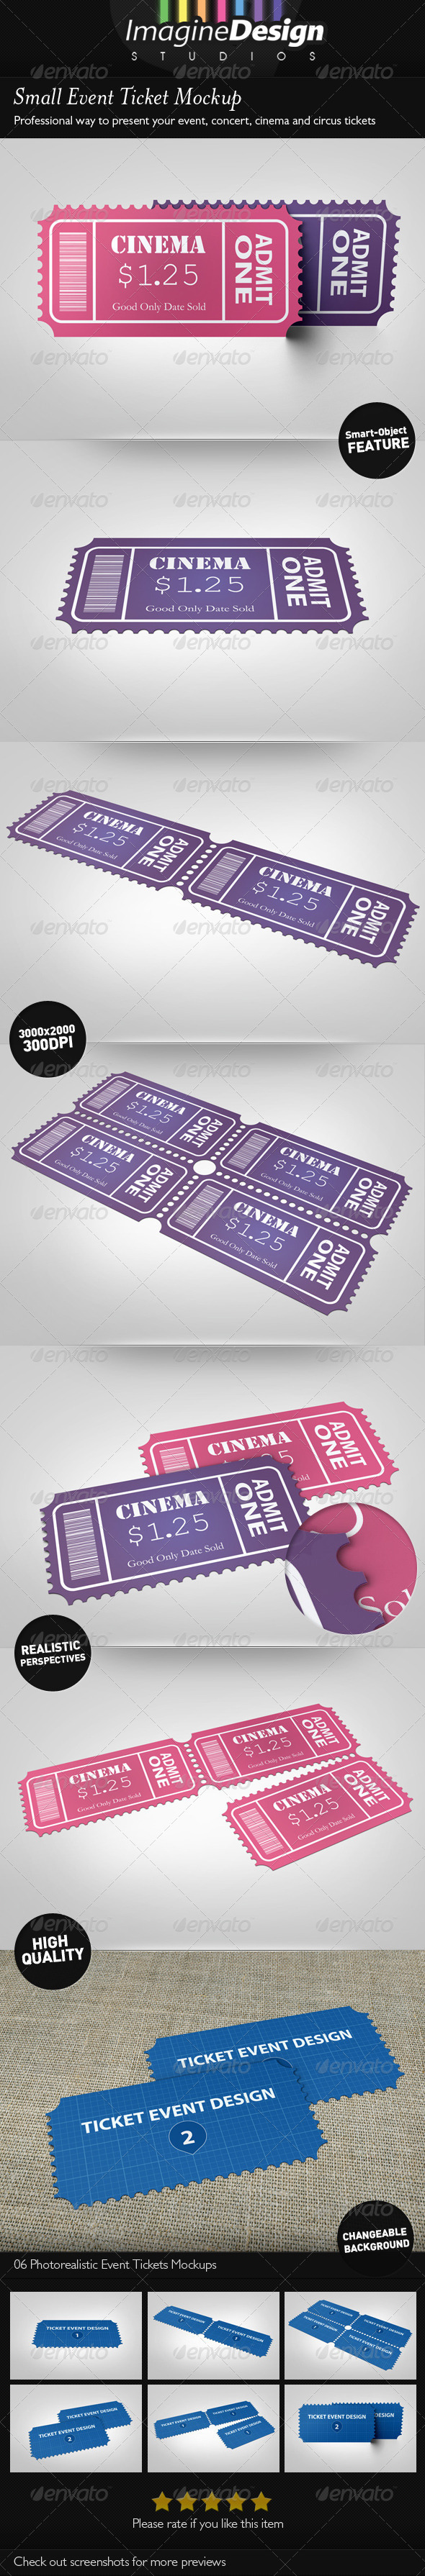 GraphicRiver Small Event Ticket Mockup 3984837